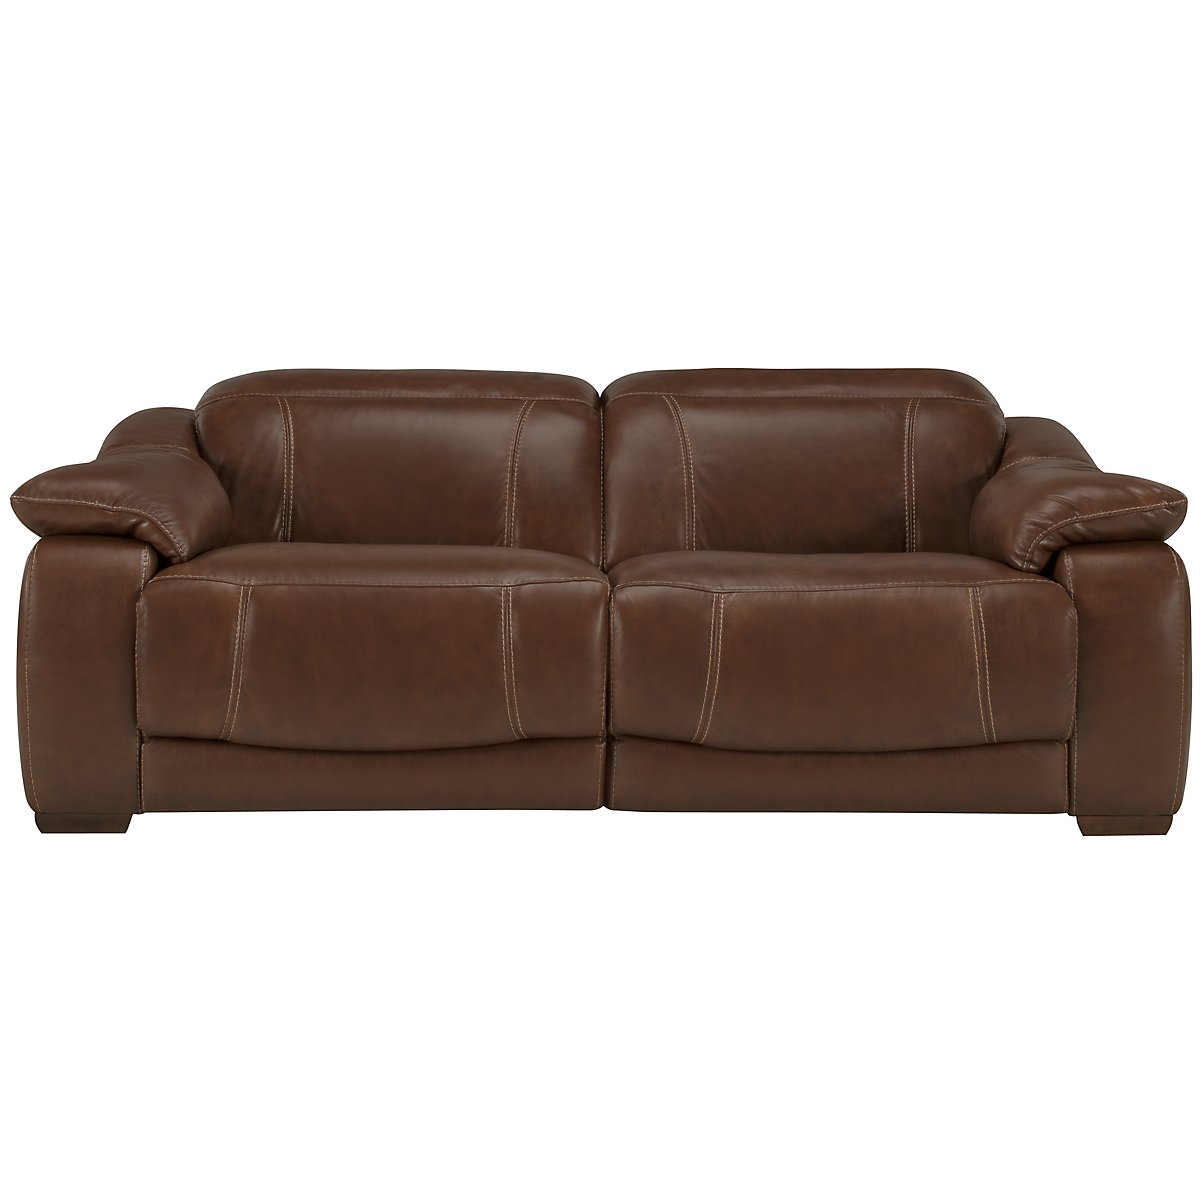 Orion Medium Brown Leather & Bonded Leather Power Reclining Loveseat